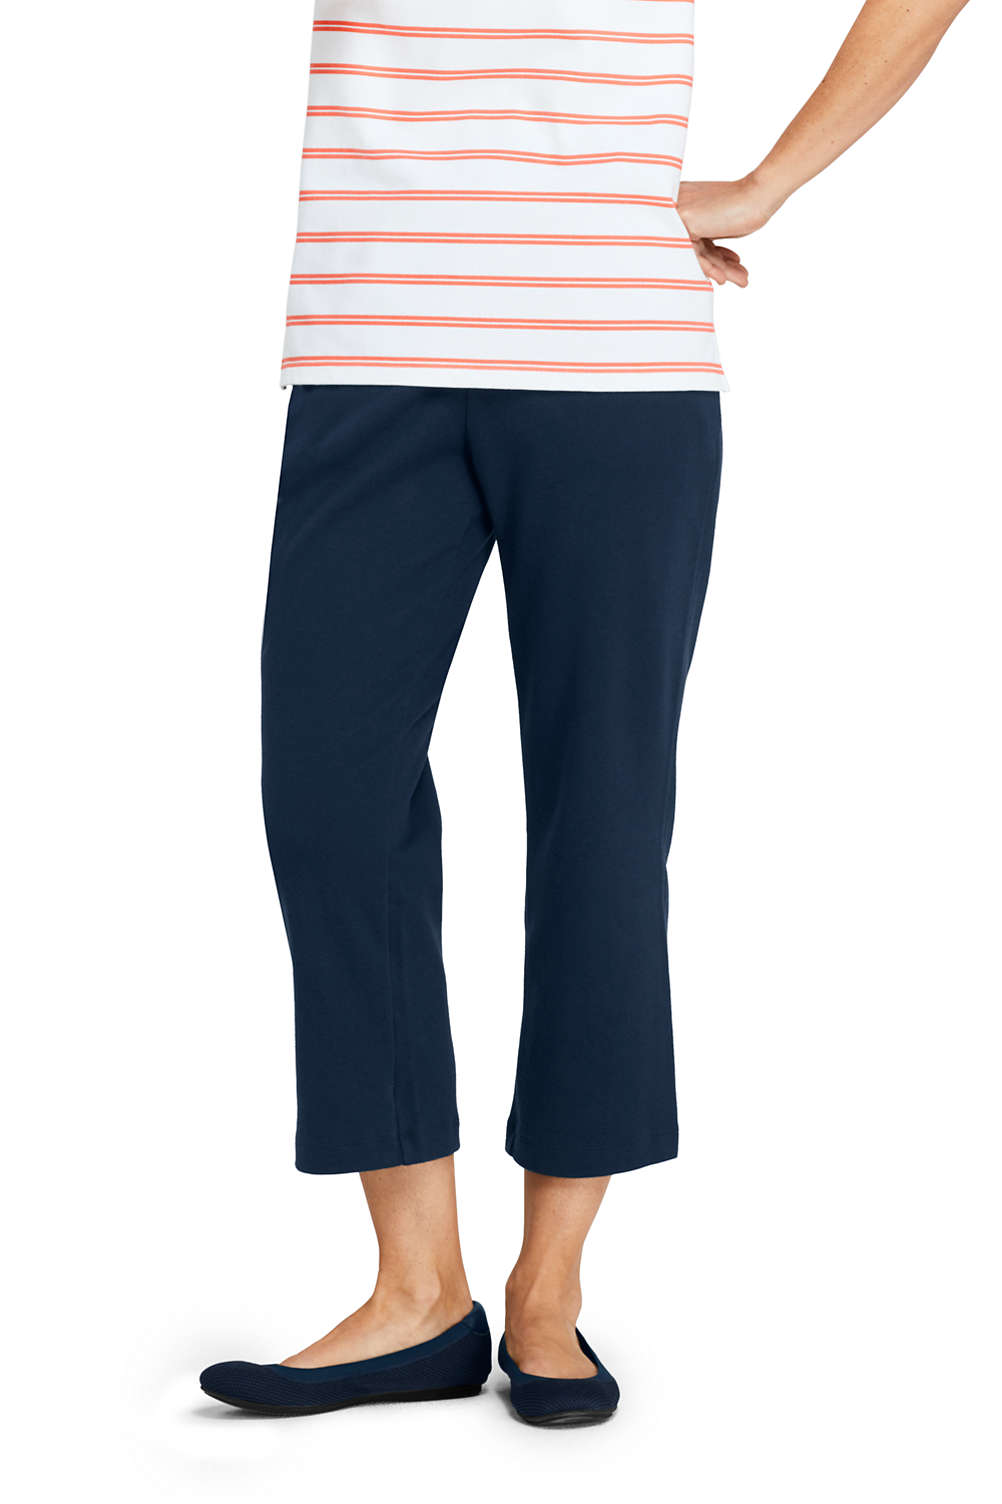 a9be6f3ed1712 Women's Sport Knit Elastic Waist Pull On Crop Pants from Lands' End